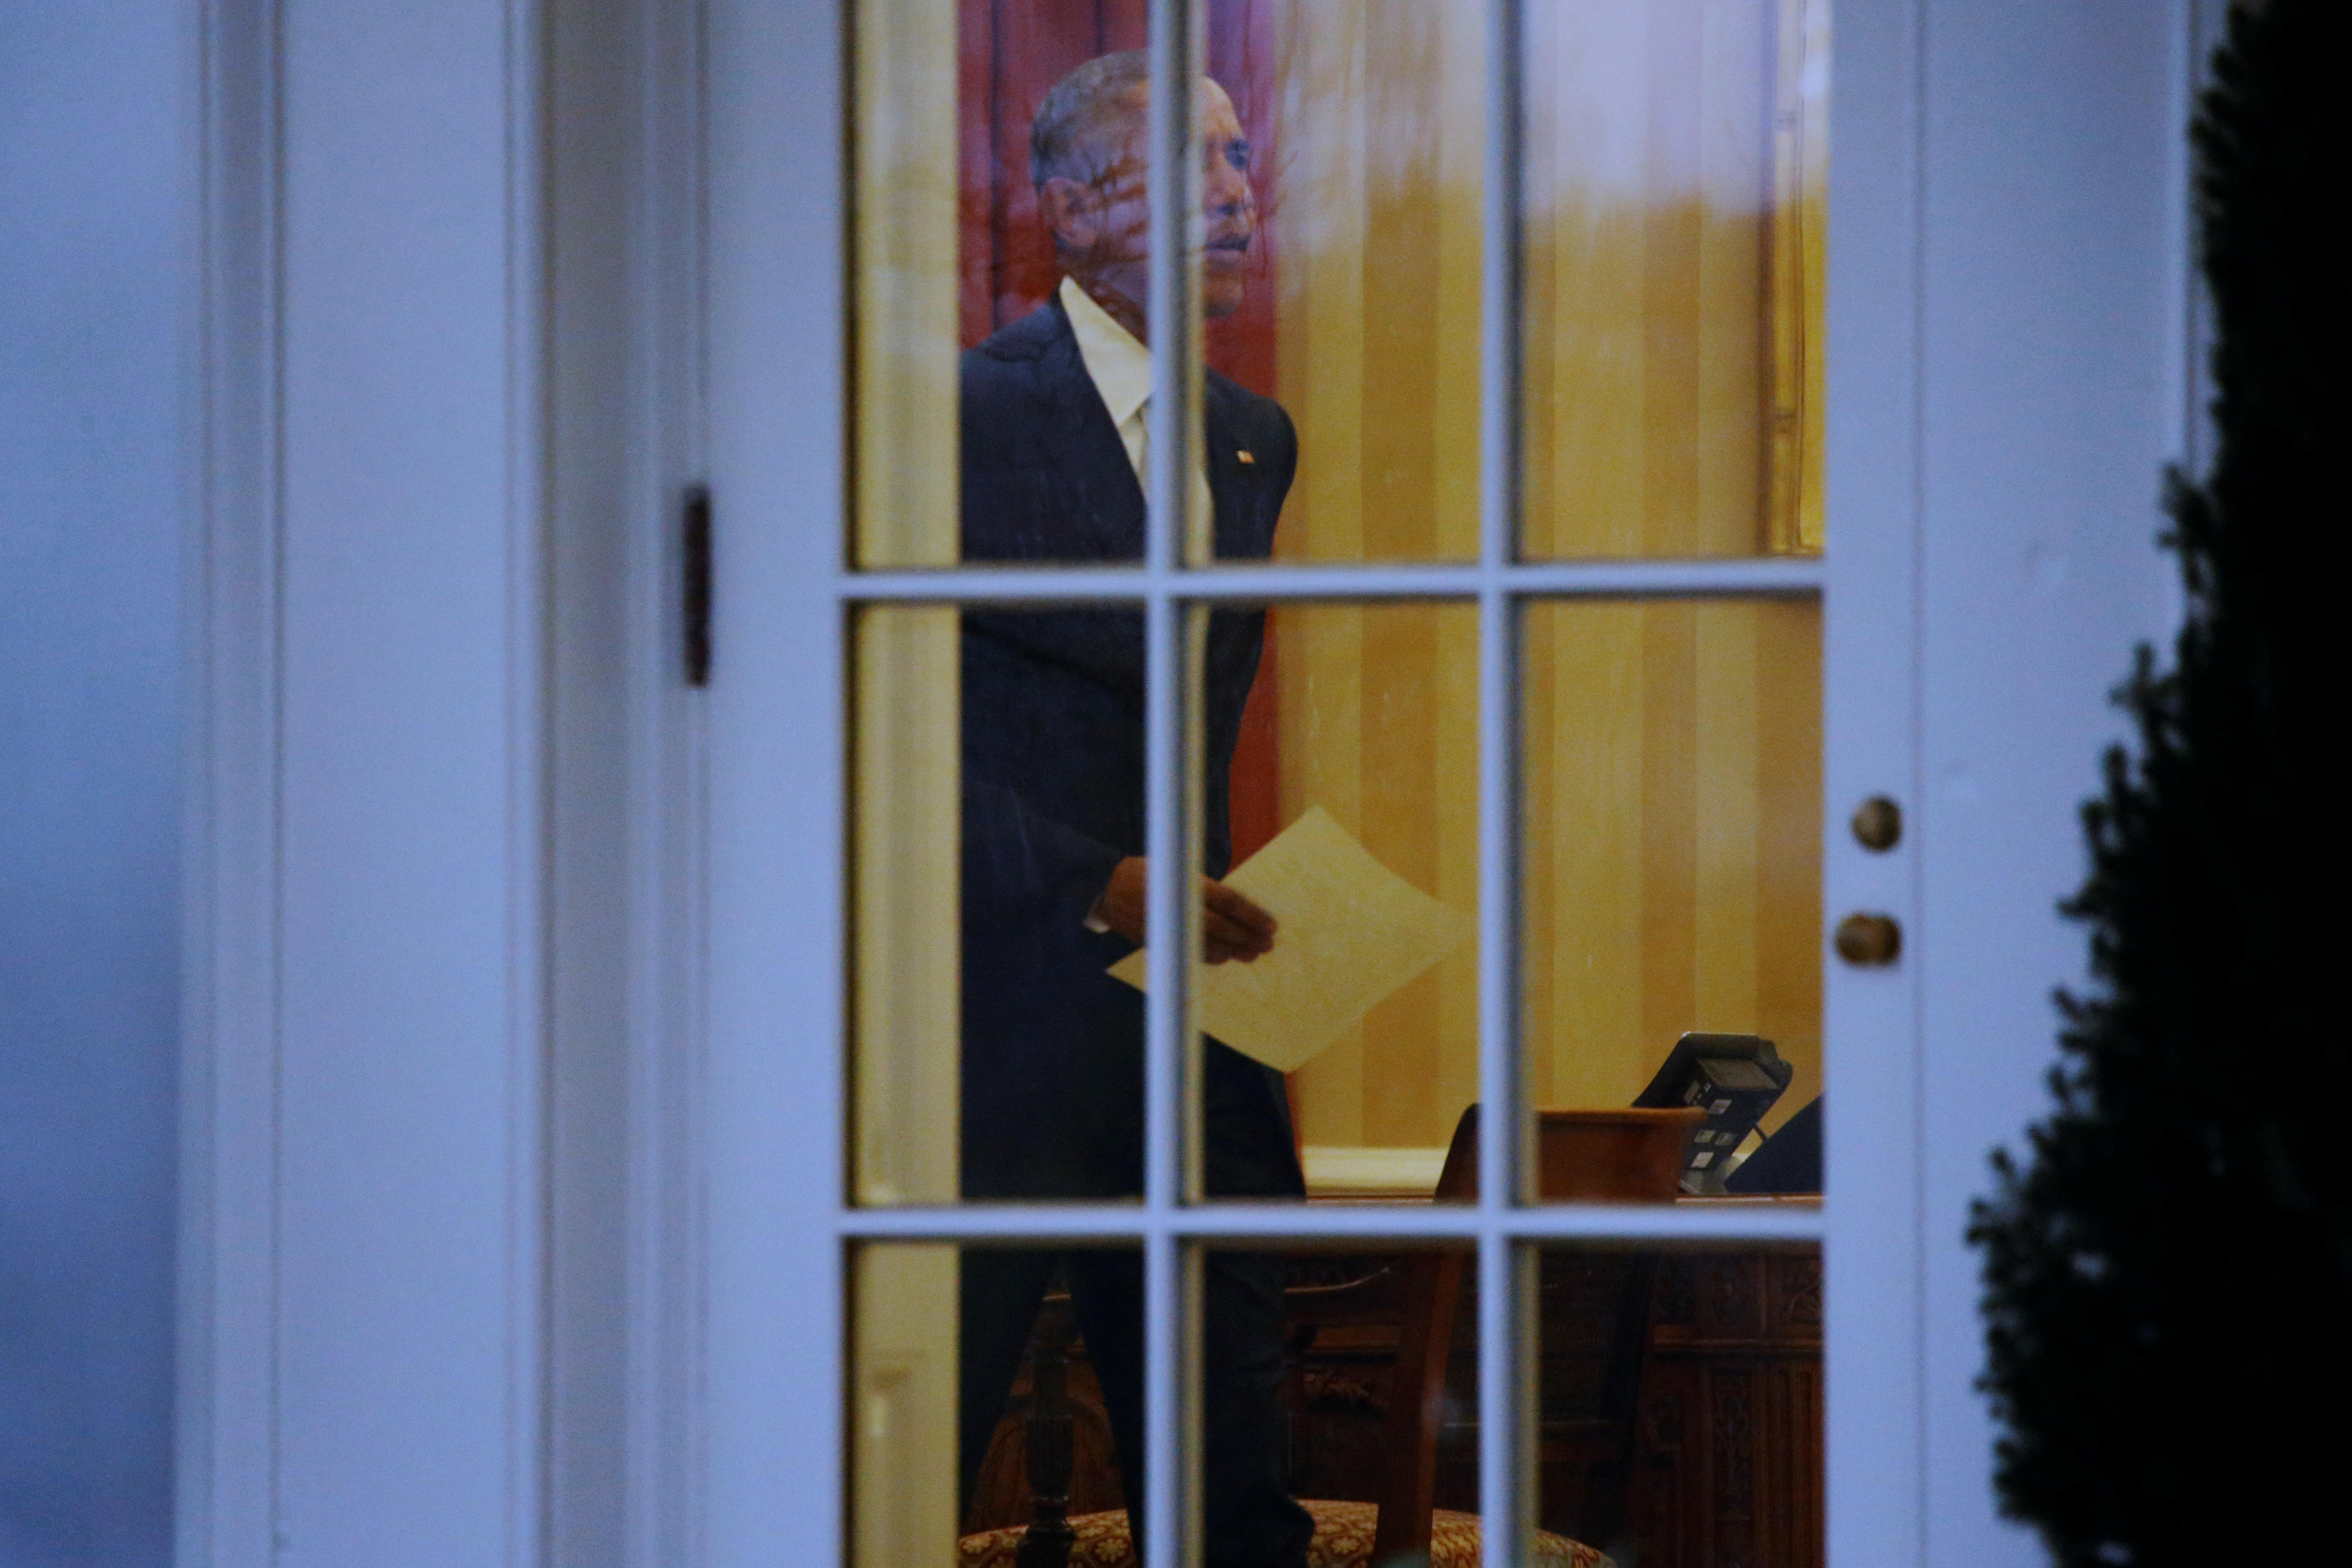 Recreating oval office Replica Obama Leaves Letter For Trump In Oval Office Wikihow Obama Letter To Trump And Bush Letter To Obama Cbs News